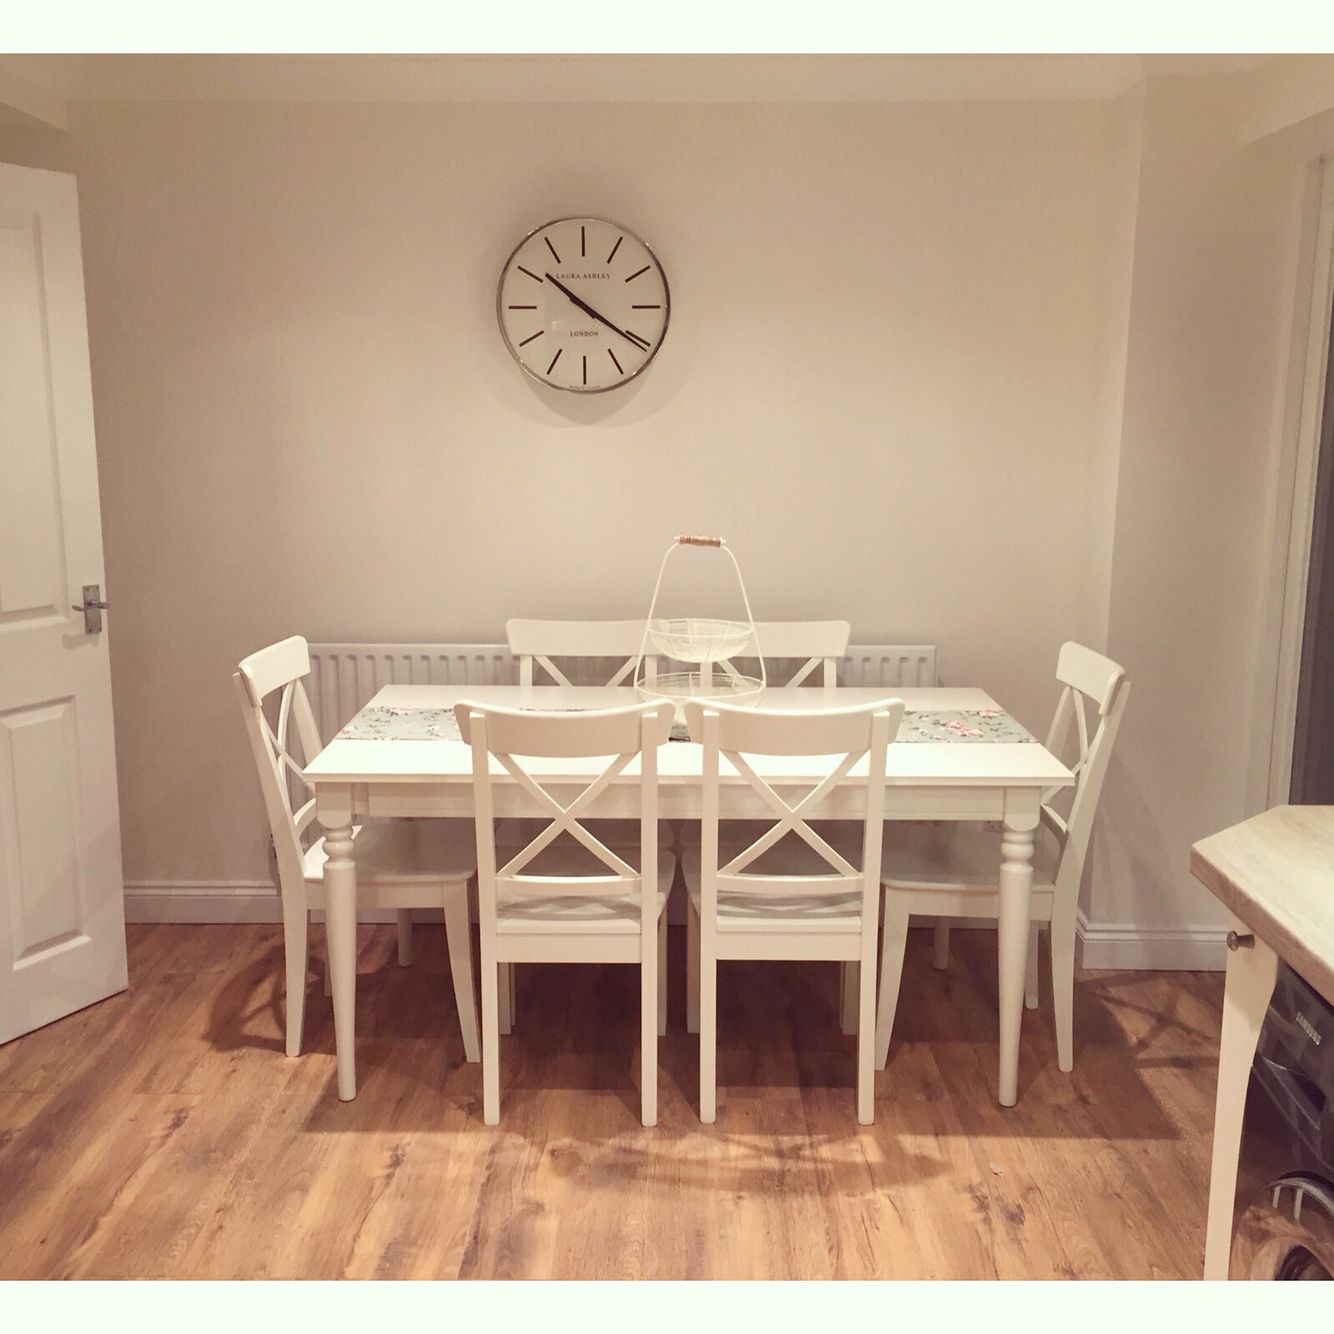 Sala Da Pranzo Shabby Chic Ikea.Kitchen Table Ikea Ingatorp Homedecor Shabbychic Laurashley